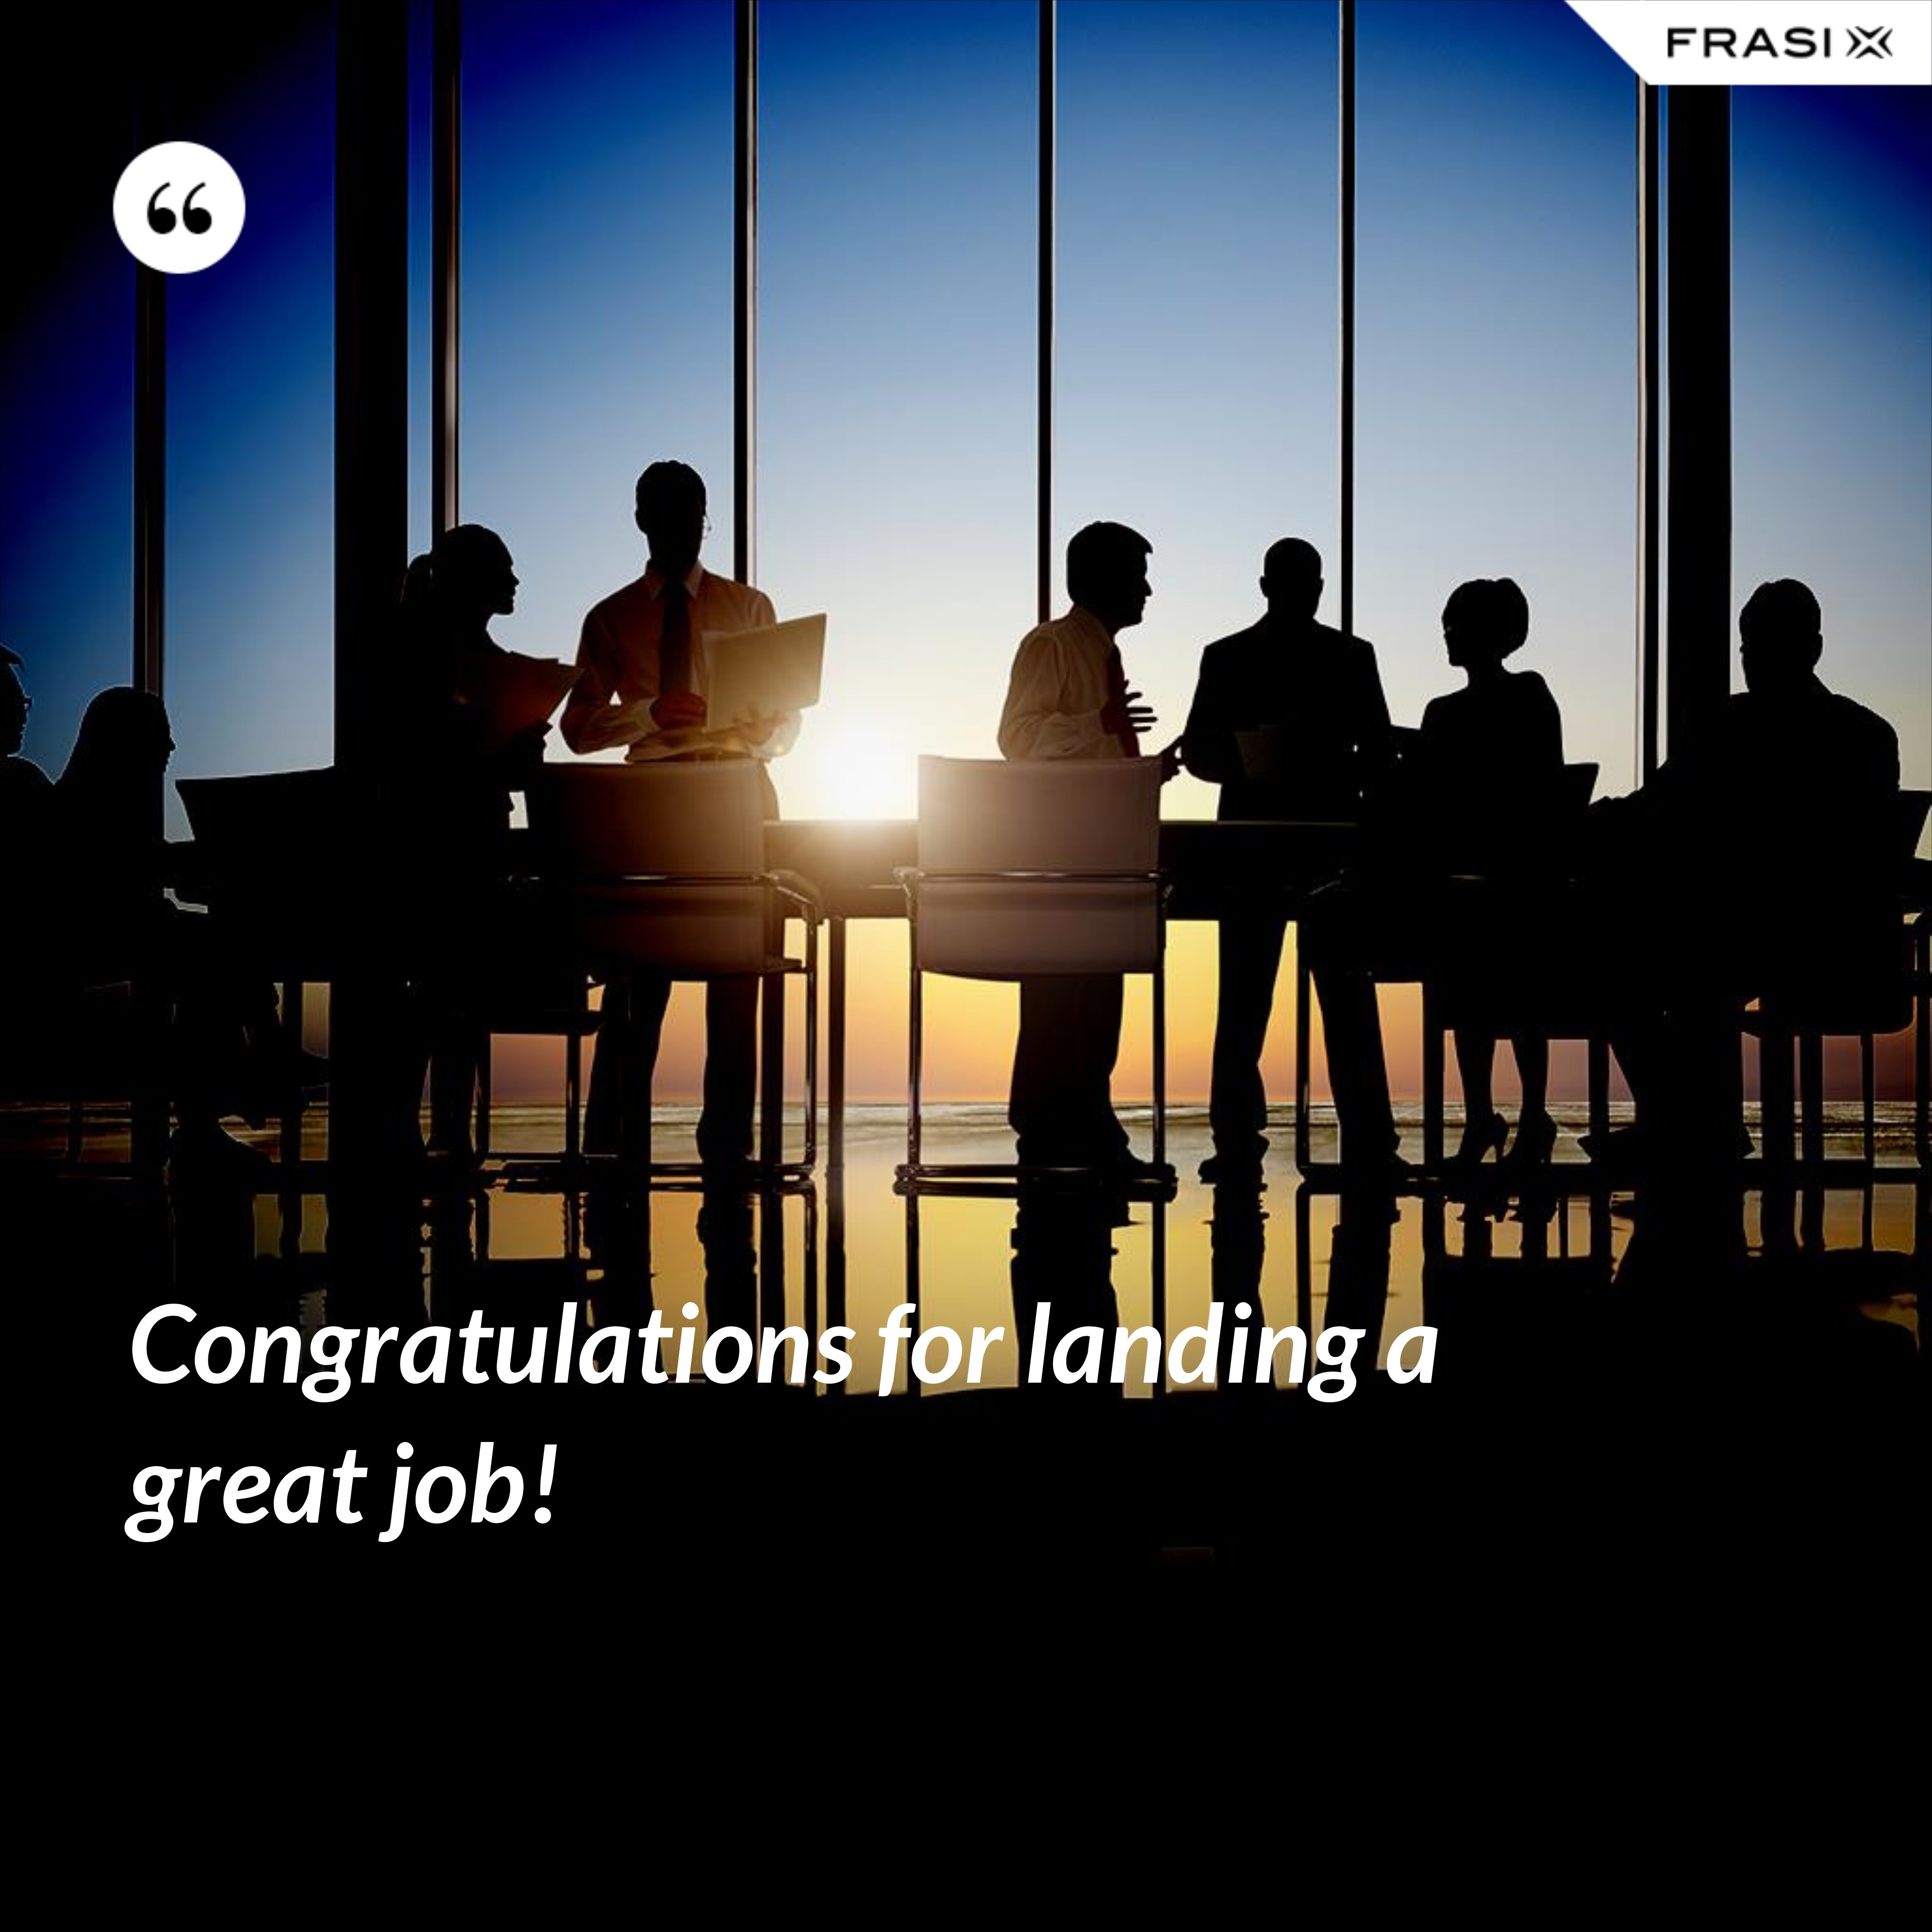 Congratulations for landing a great job! - Anonimo